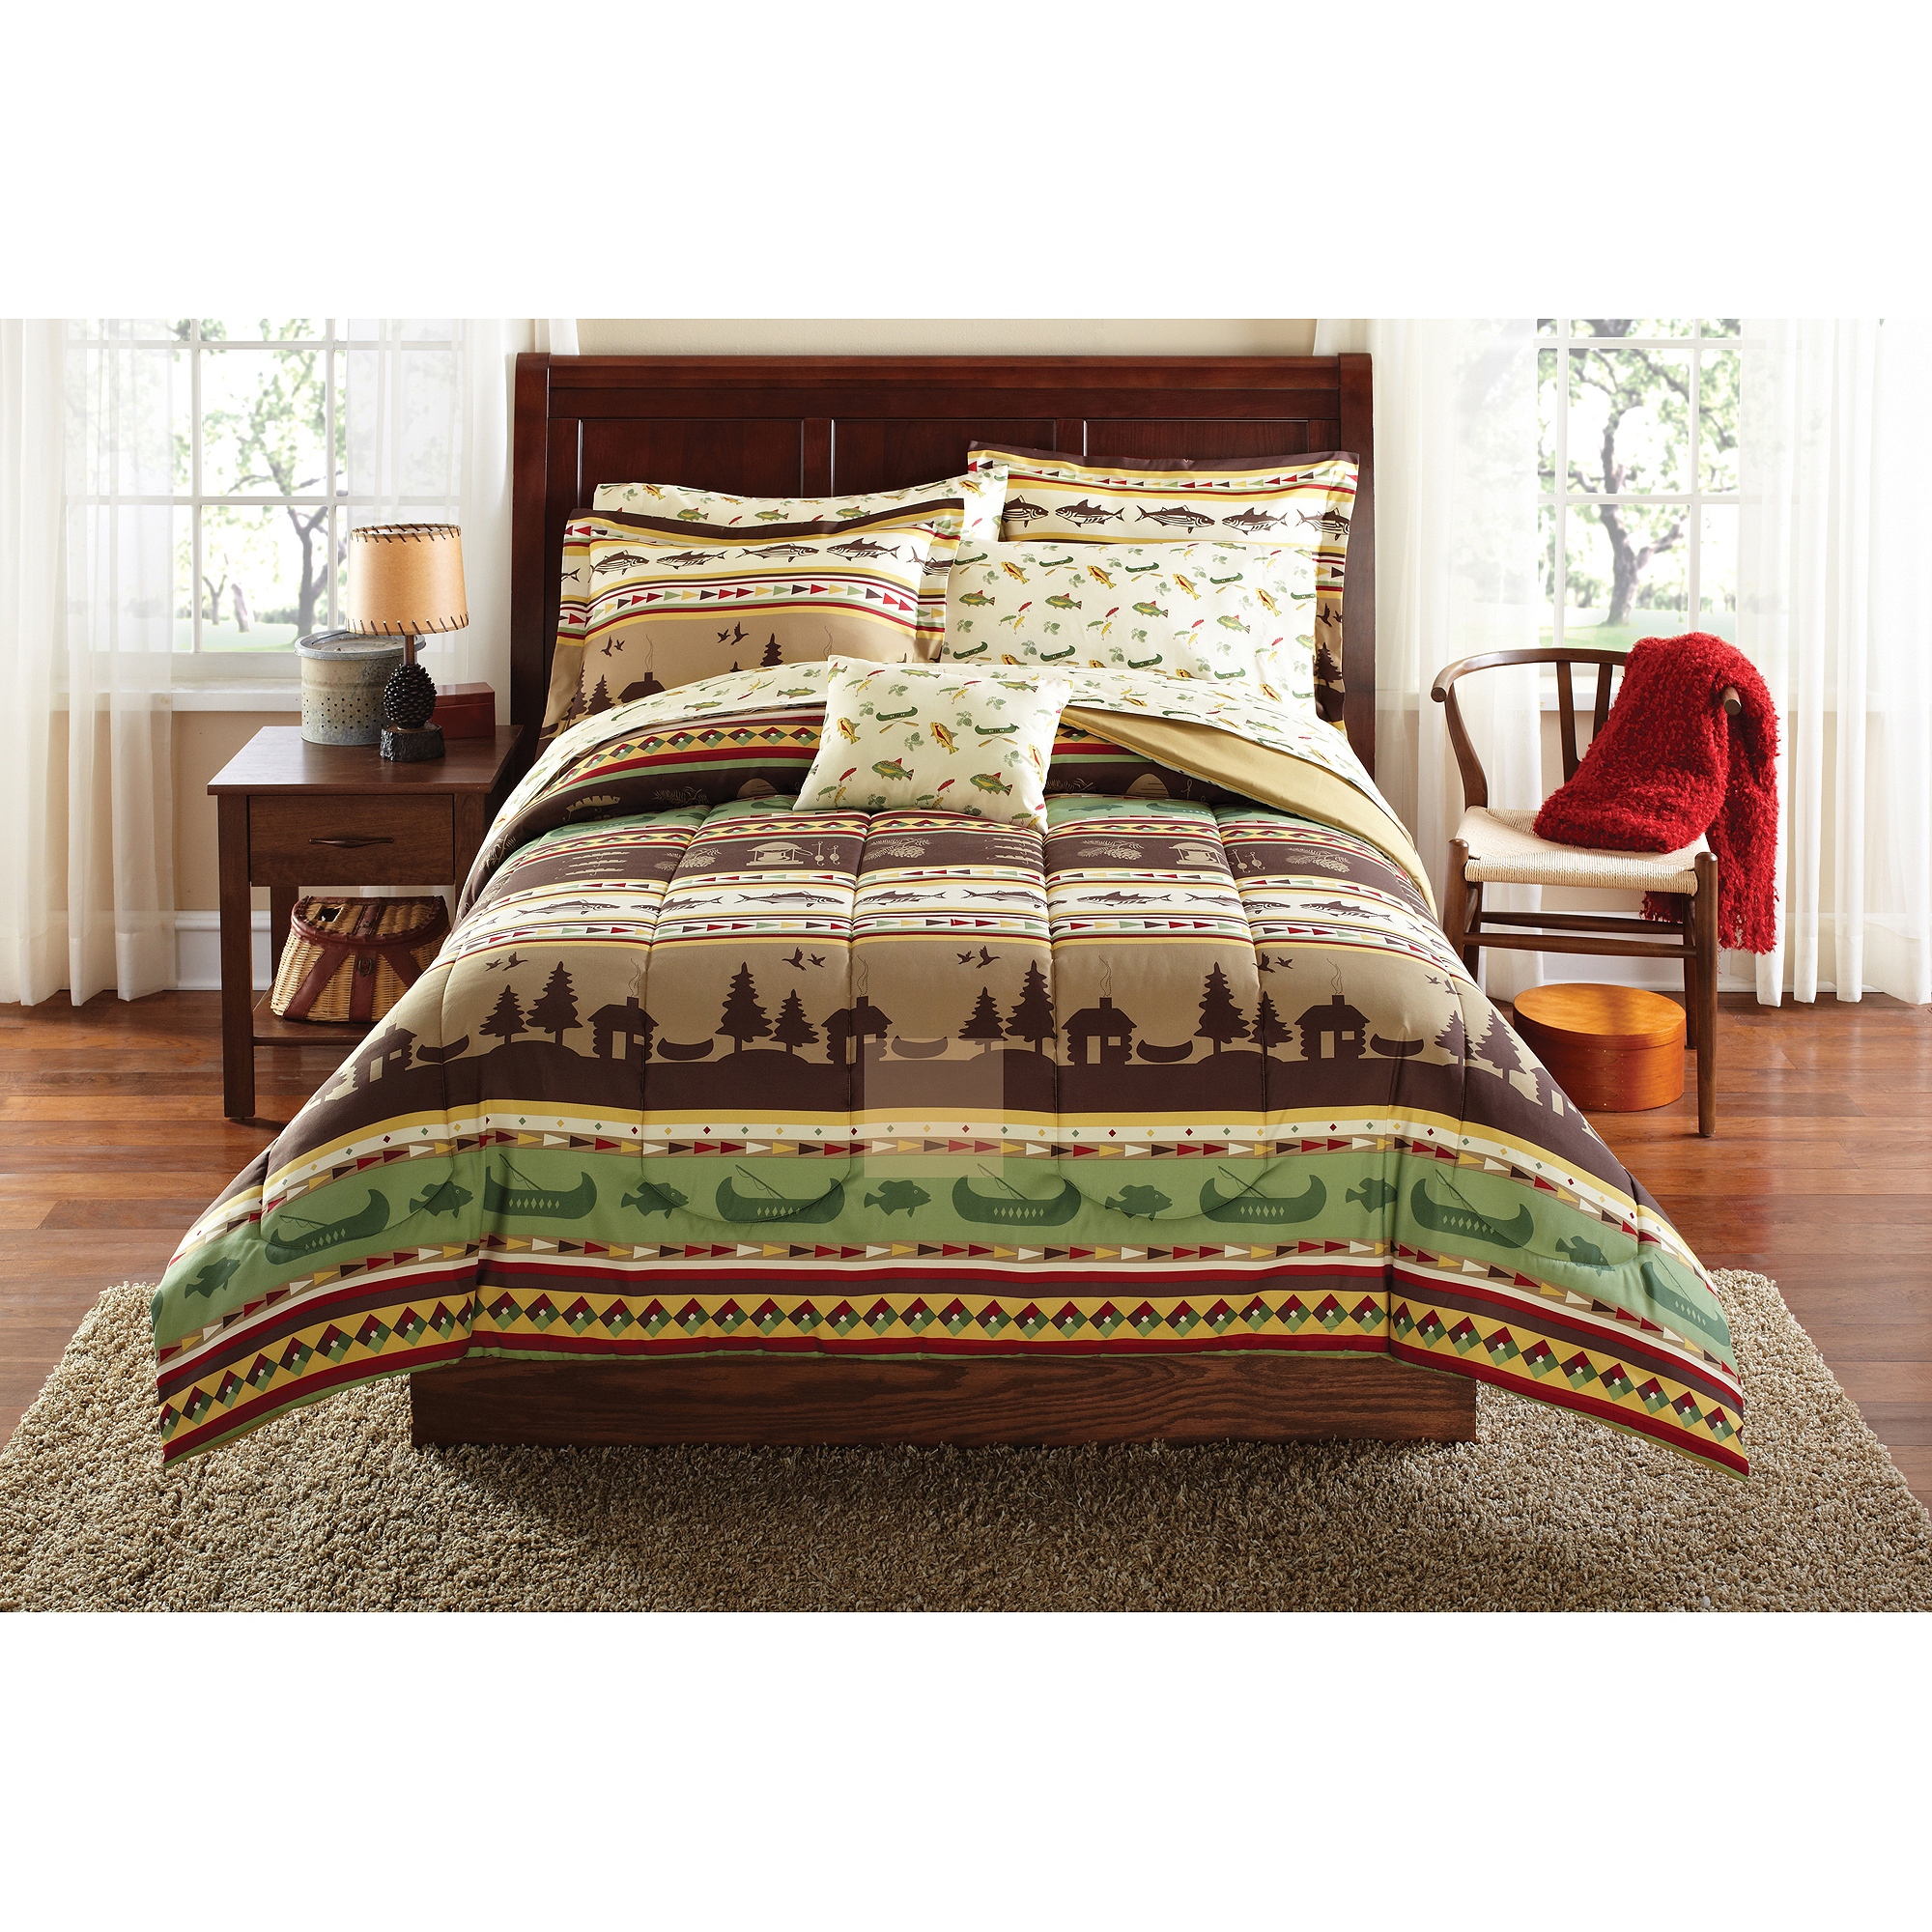 Mainstays Gone Fishing Bed in a Bag Coordinated Bedding